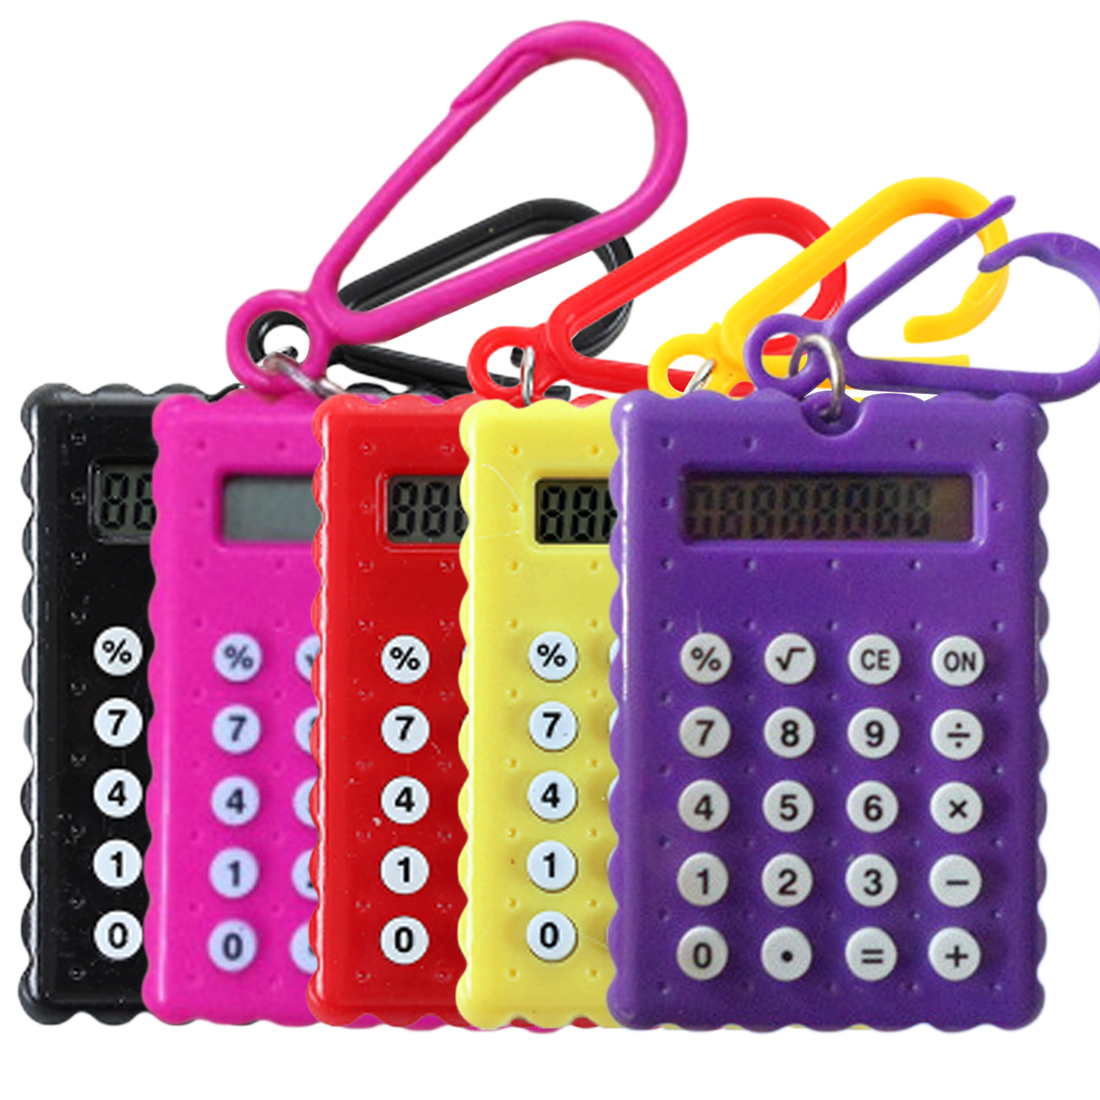 NOYOKERE Student Mini Electronic Calculator Candy Color Calculating Office Supplies Gift Super small High Quality